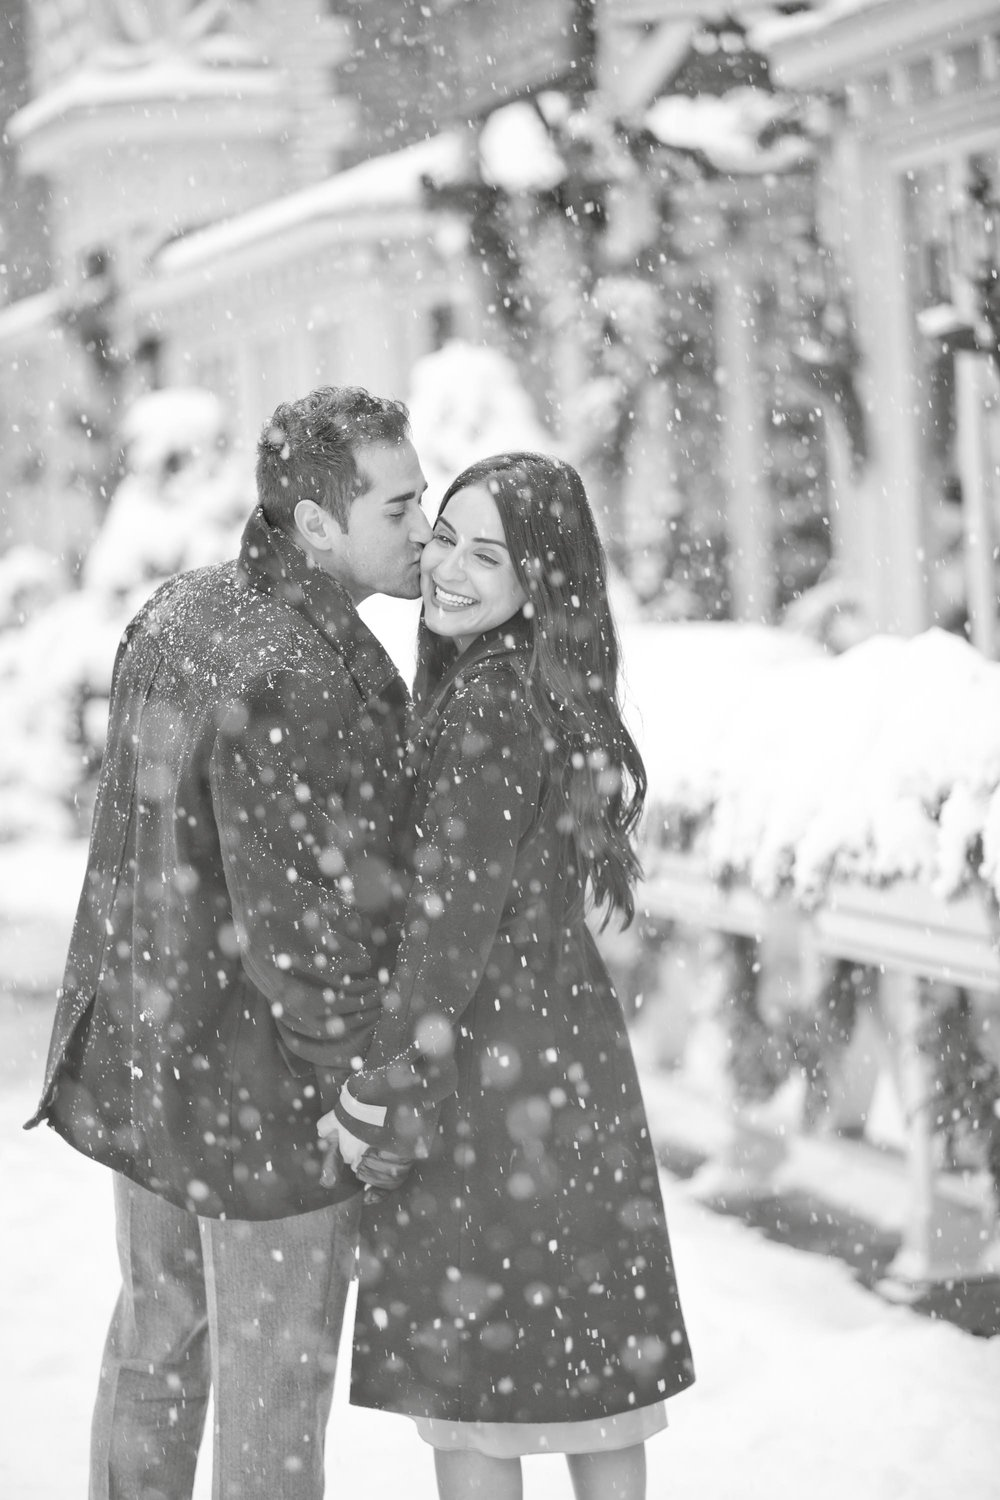 nataschia_wielink_photography_niagara_on_the_lake_engagement_session_vanessa_matt 0009 .JPG